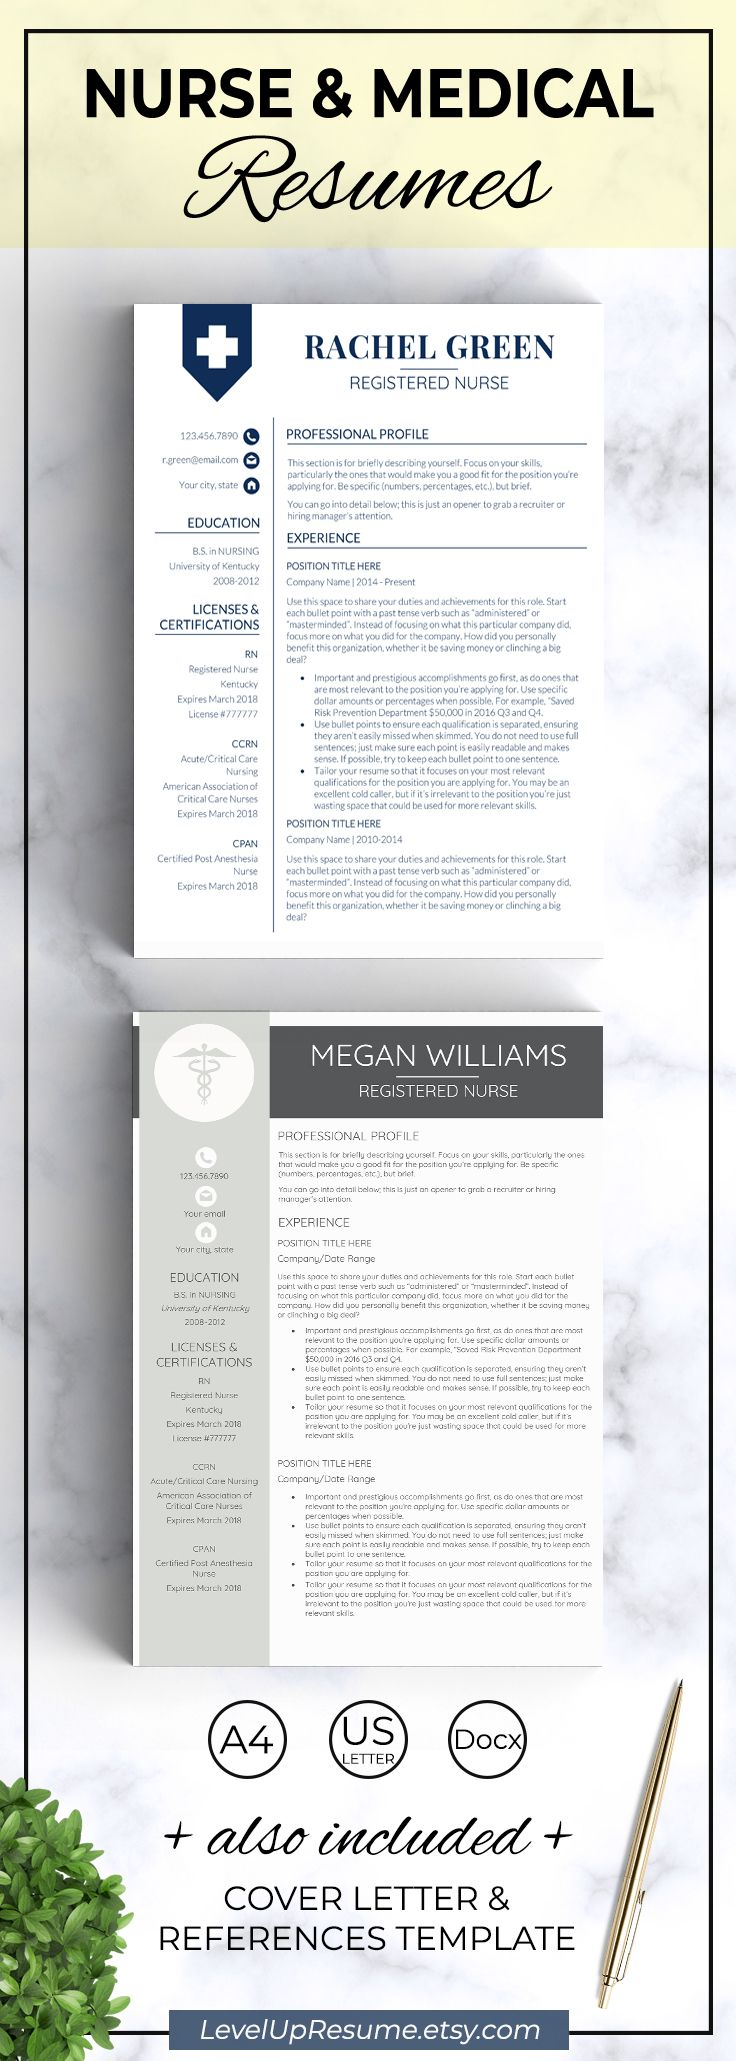 Medical resume template. Registered nurse resume template for new grad. Nursing resume template, design, tips. Get hired! Click on the link or save the pin to your board >>>>> #career #job #resume #resumetemplate #nurse #medical